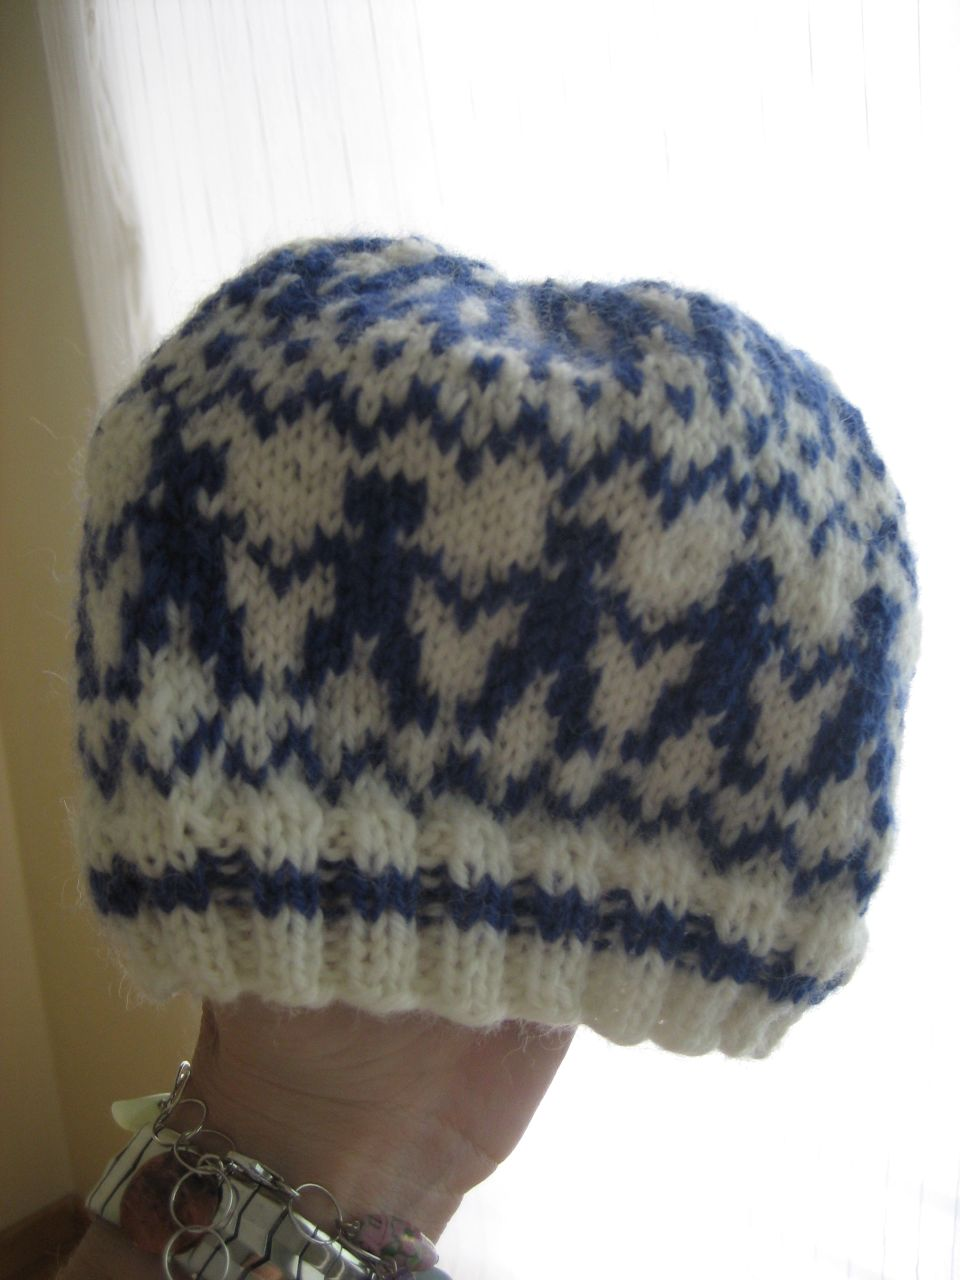 Jan's hat: my first color project